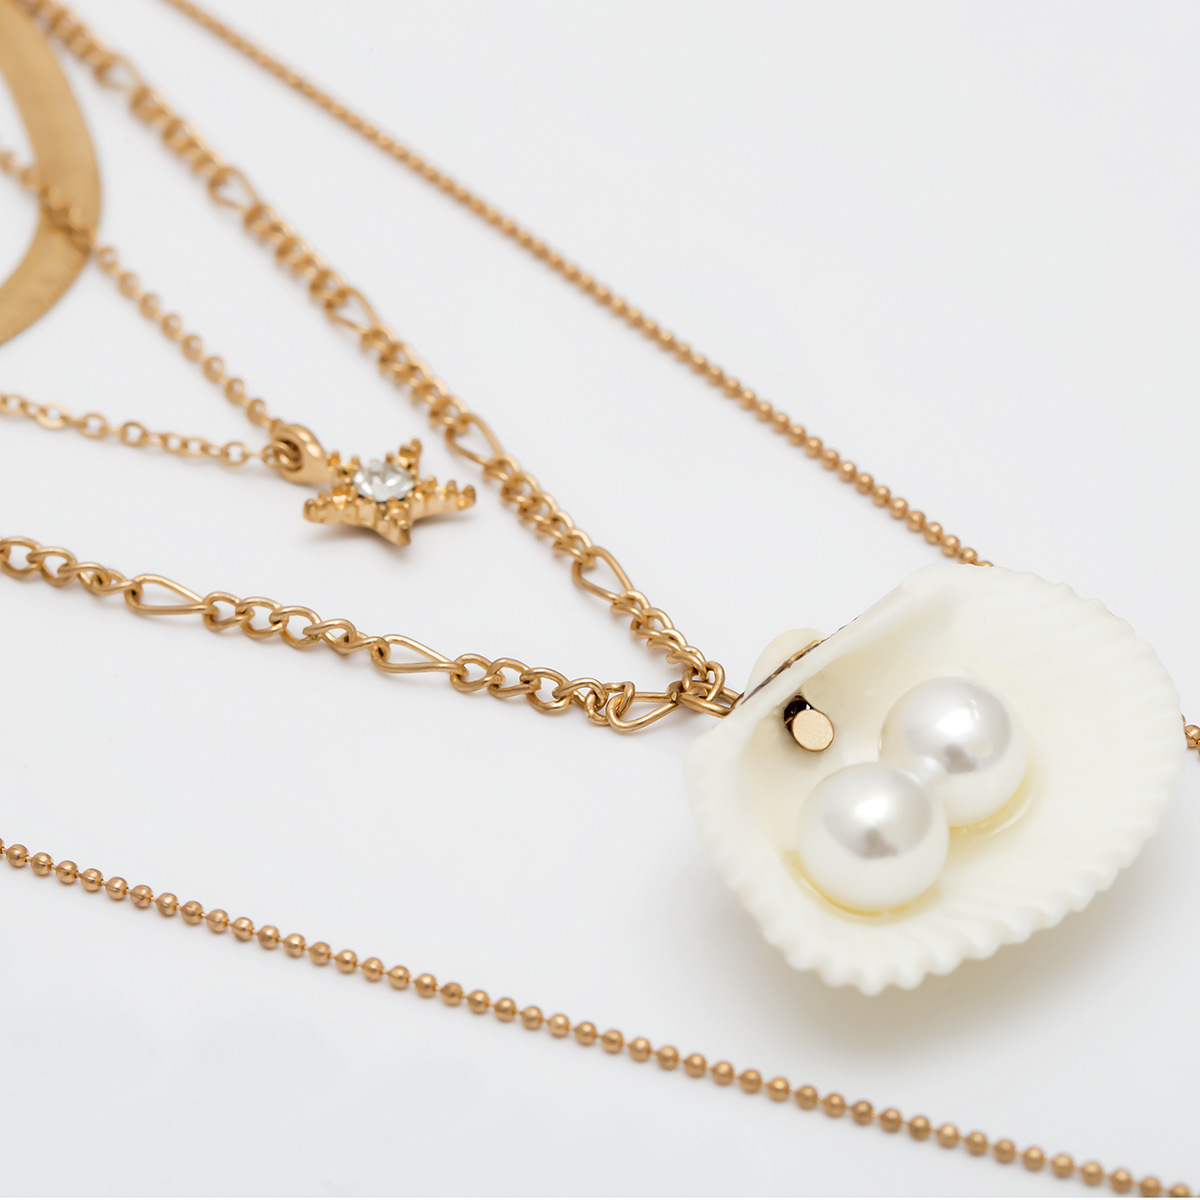 Simple Natural Scallop Pendant Necklace Female Imitation Pearls Choker Necklaces for Women Gold Color 2019 Fashion Jewelry New